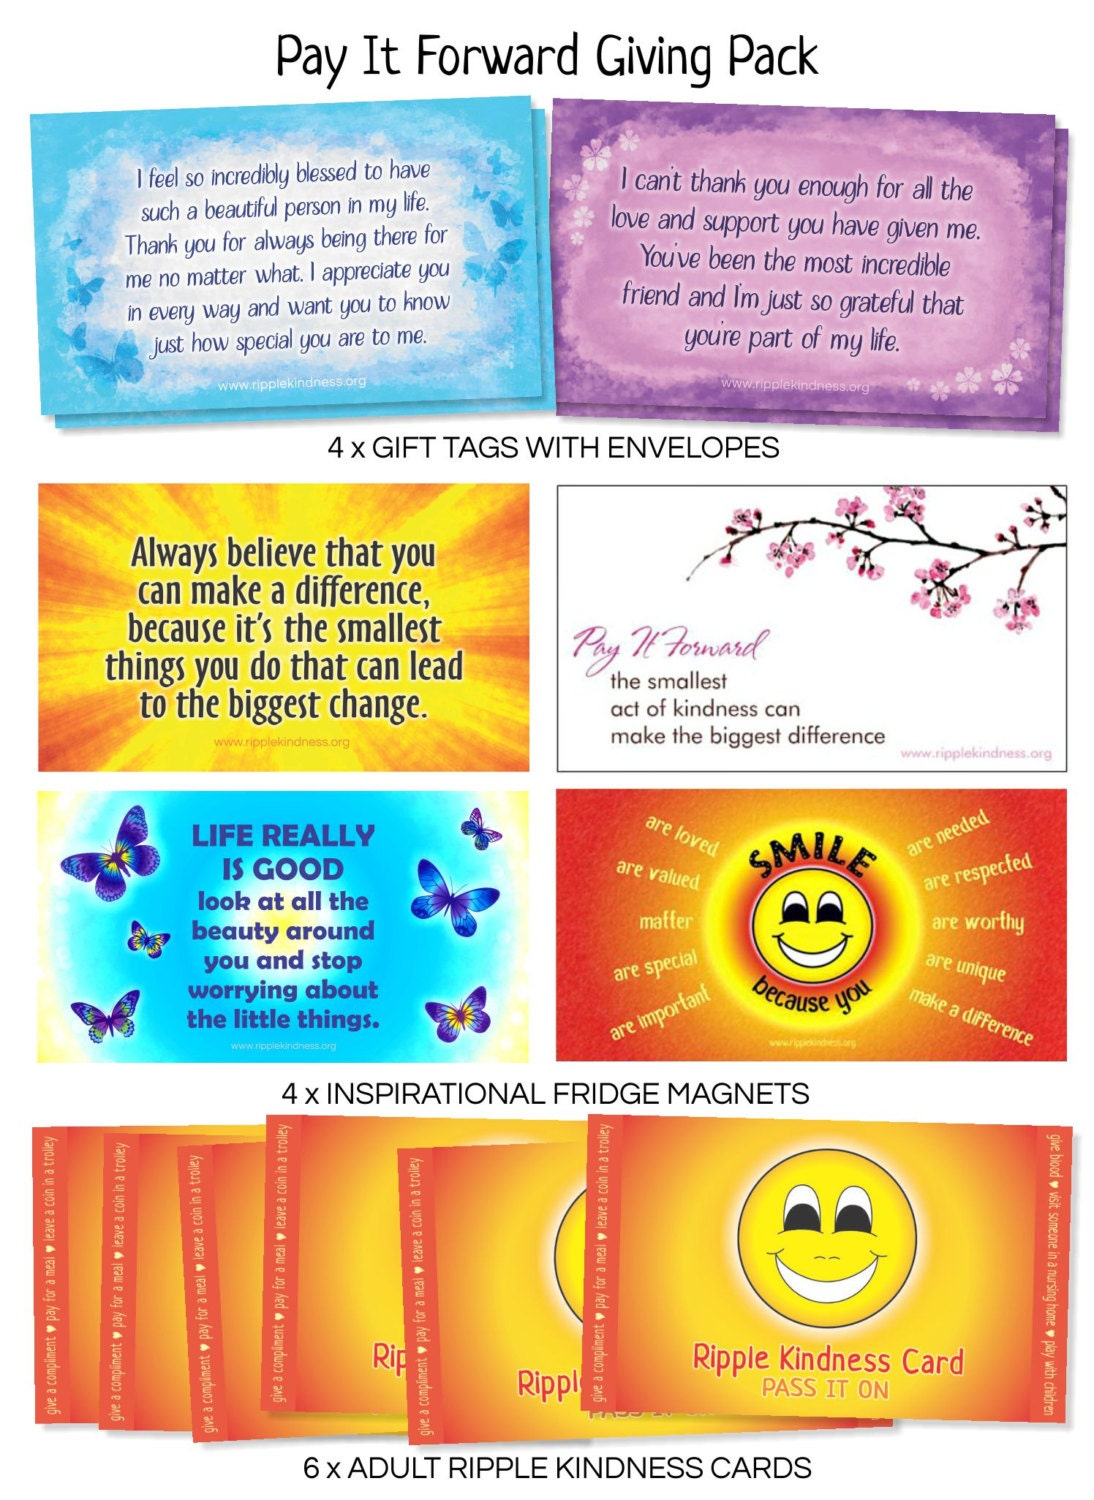 pay it forward giving pack fridge magnets gift tags. Black Bedroom Furniture Sets. Home Design Ideas